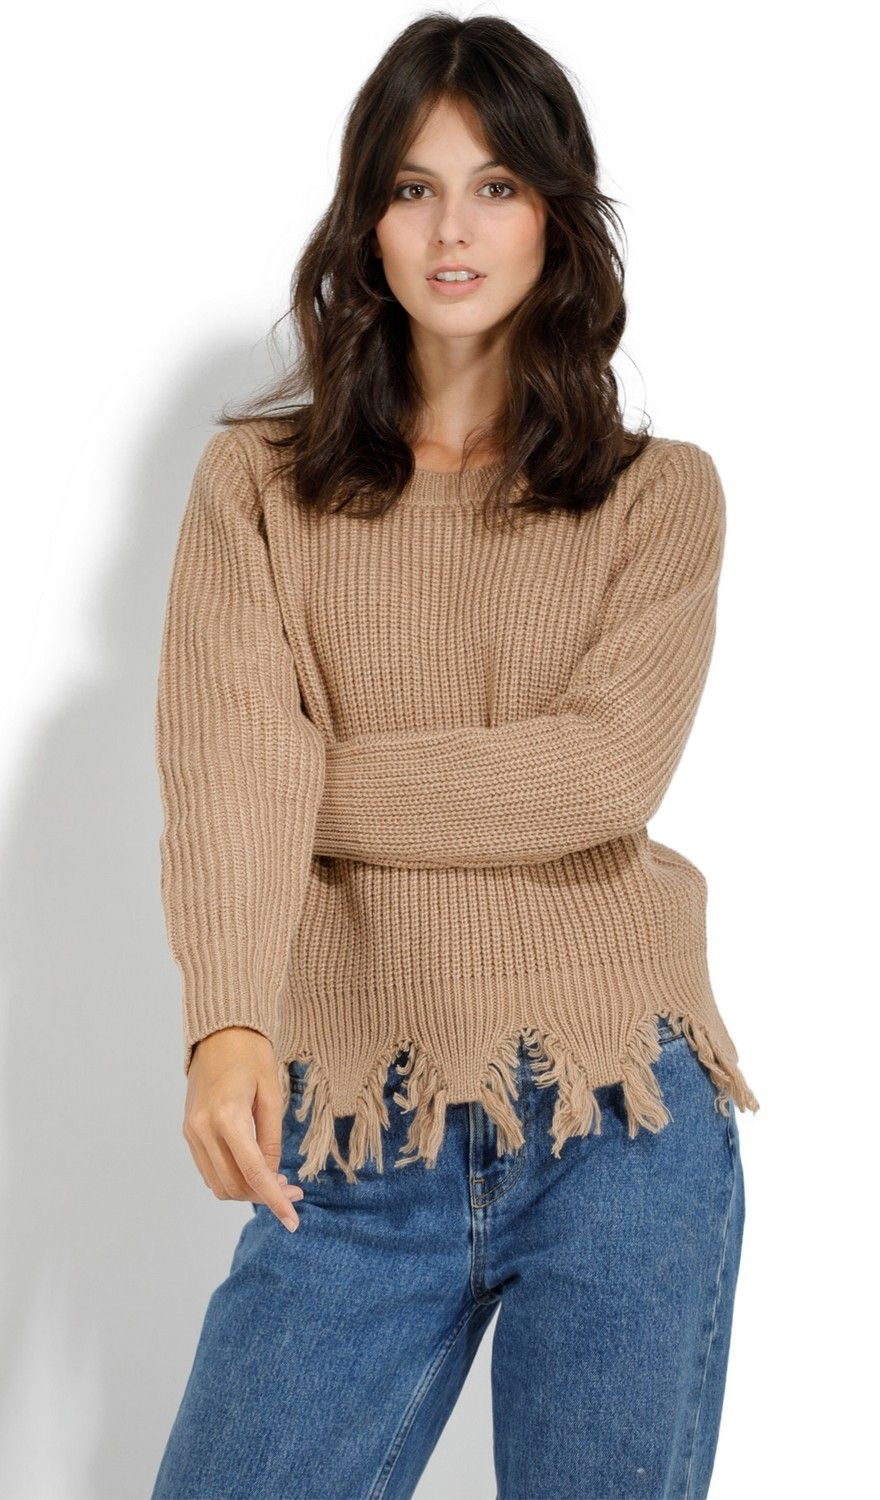 Assuili Crew Neck Ribbed Sweater with Distressed Hem in Beige